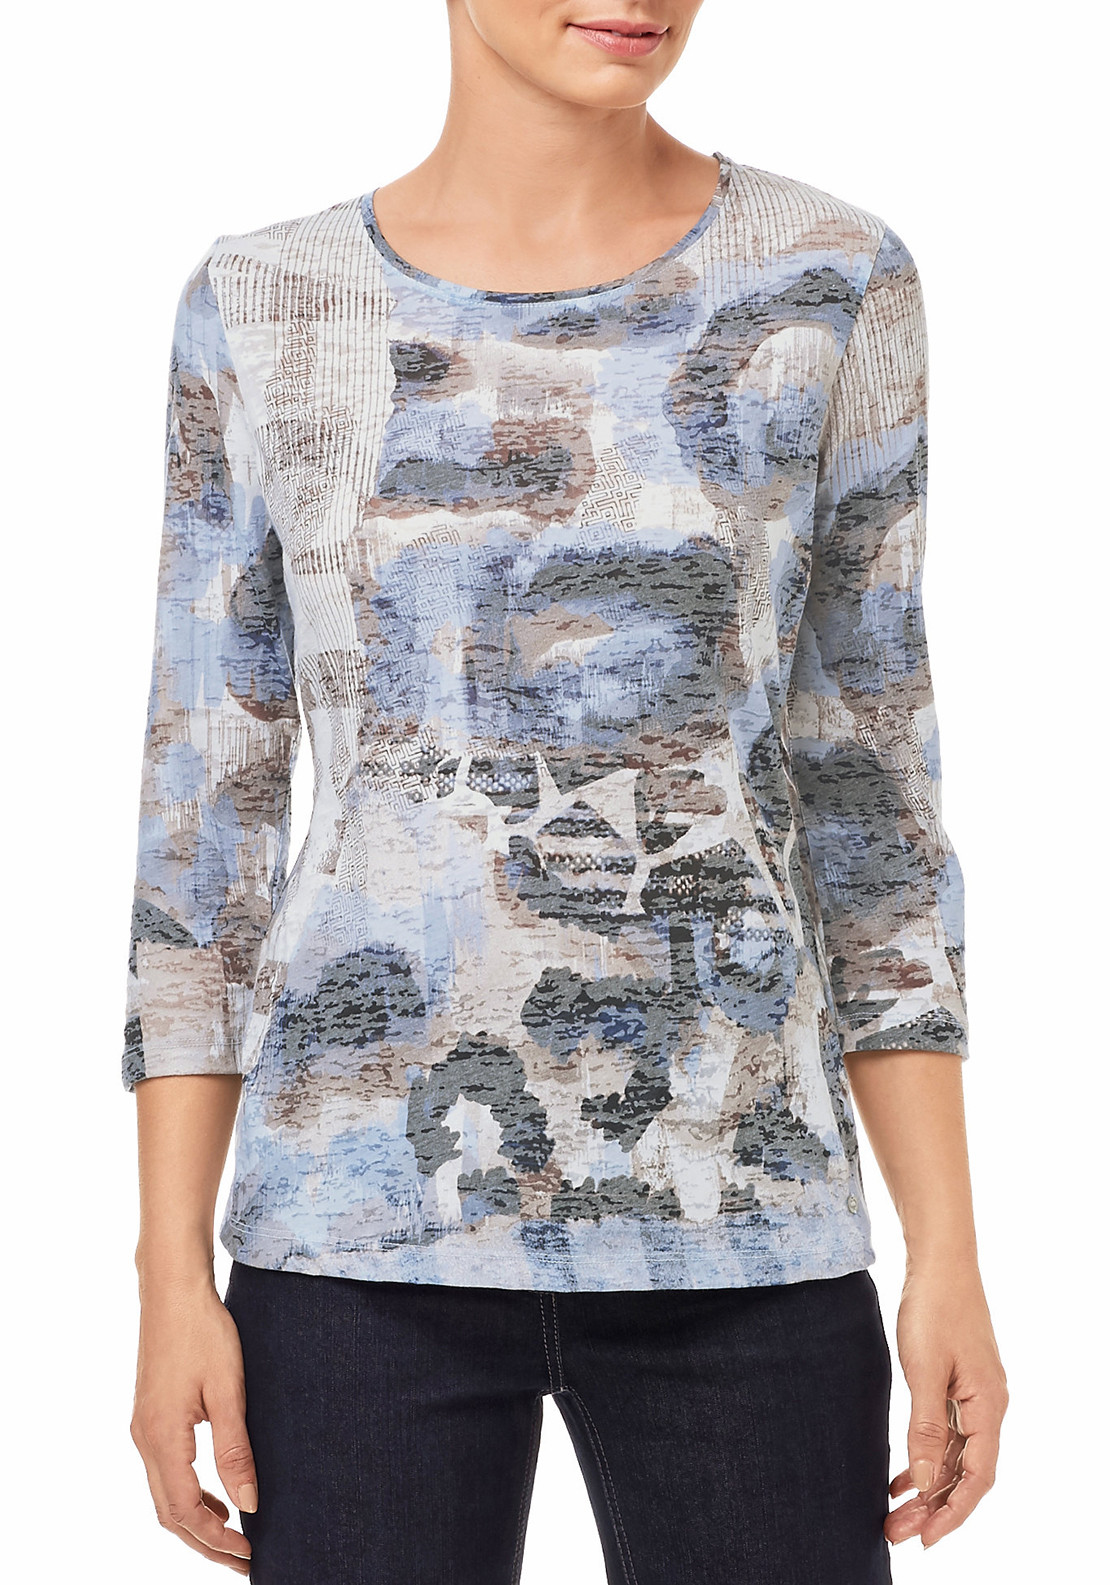 Gerry Weber Camouflage Print Cropped Sleeve Top, Multi-Coloured